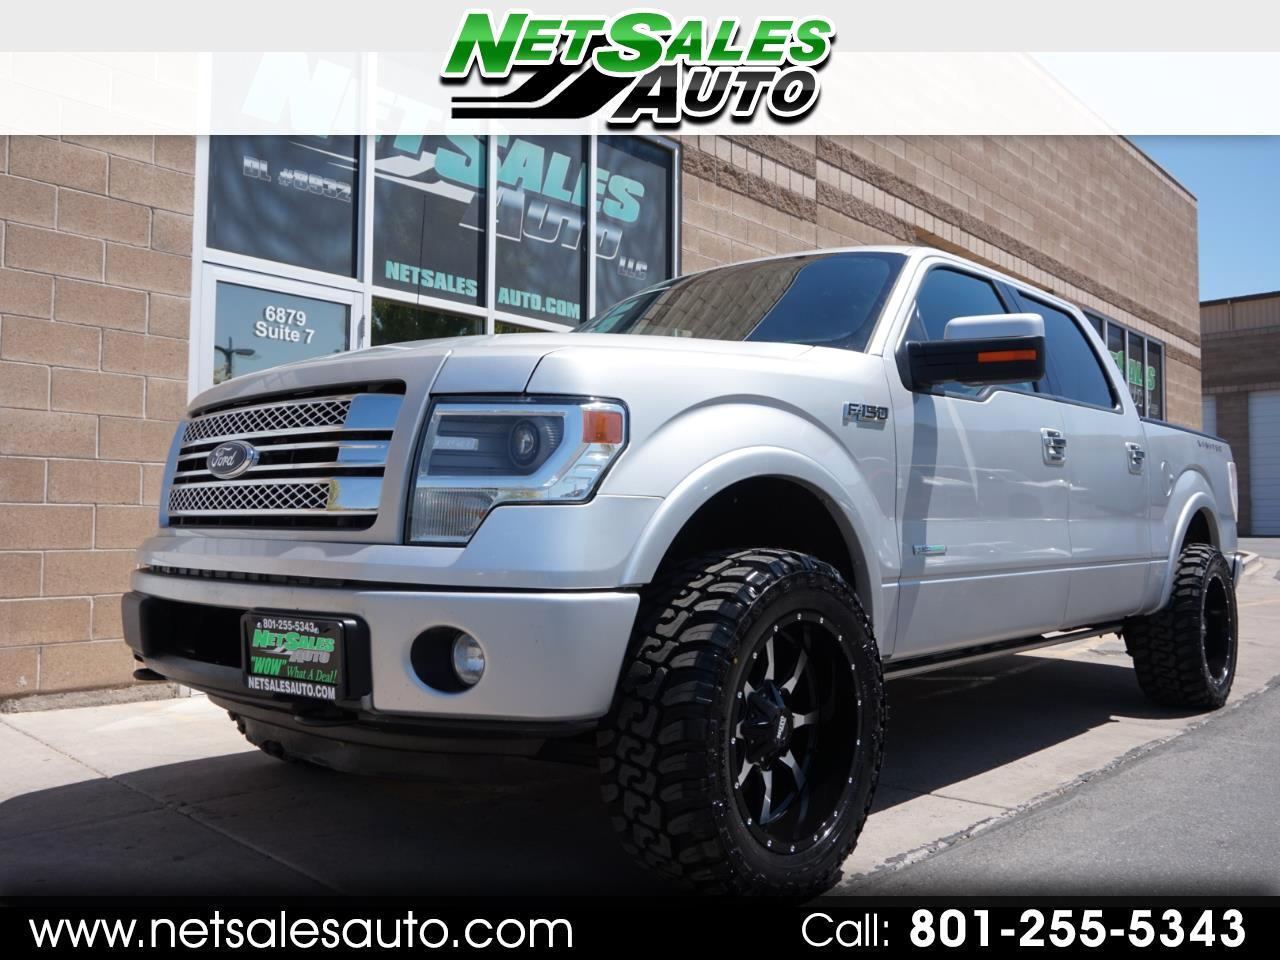 2014 Ford F-150 SuperCrew LIMITED